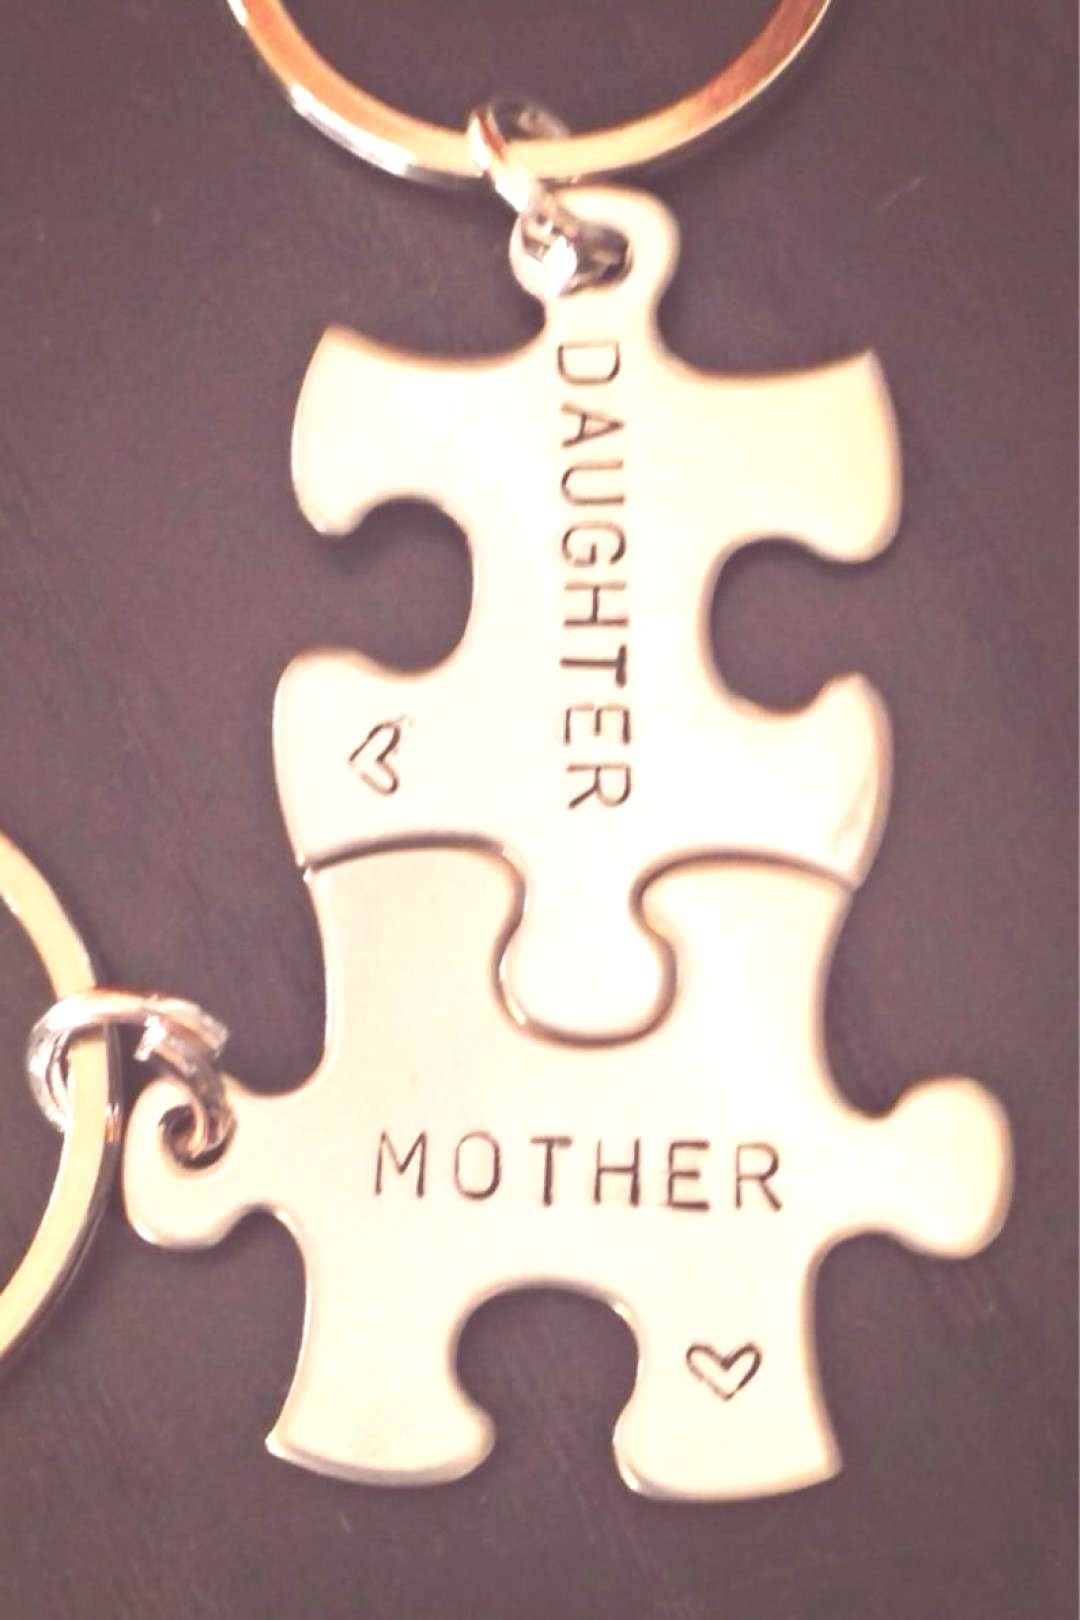 Mother Daughter Gifts Mother Daughter Keychain Mother   Etsy